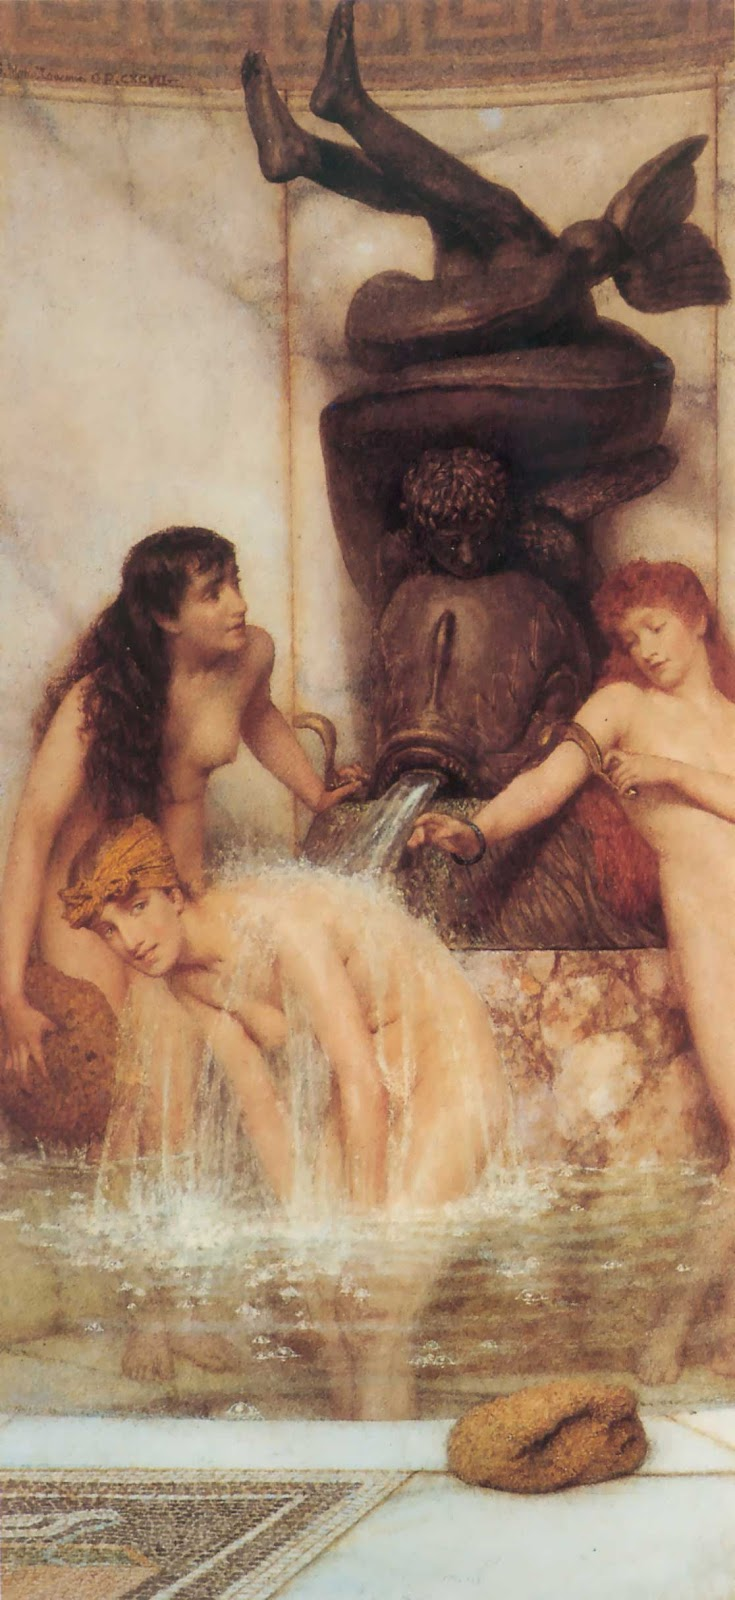 12-1879_lawrence_alma-tadema_-_strigils_and_sponges